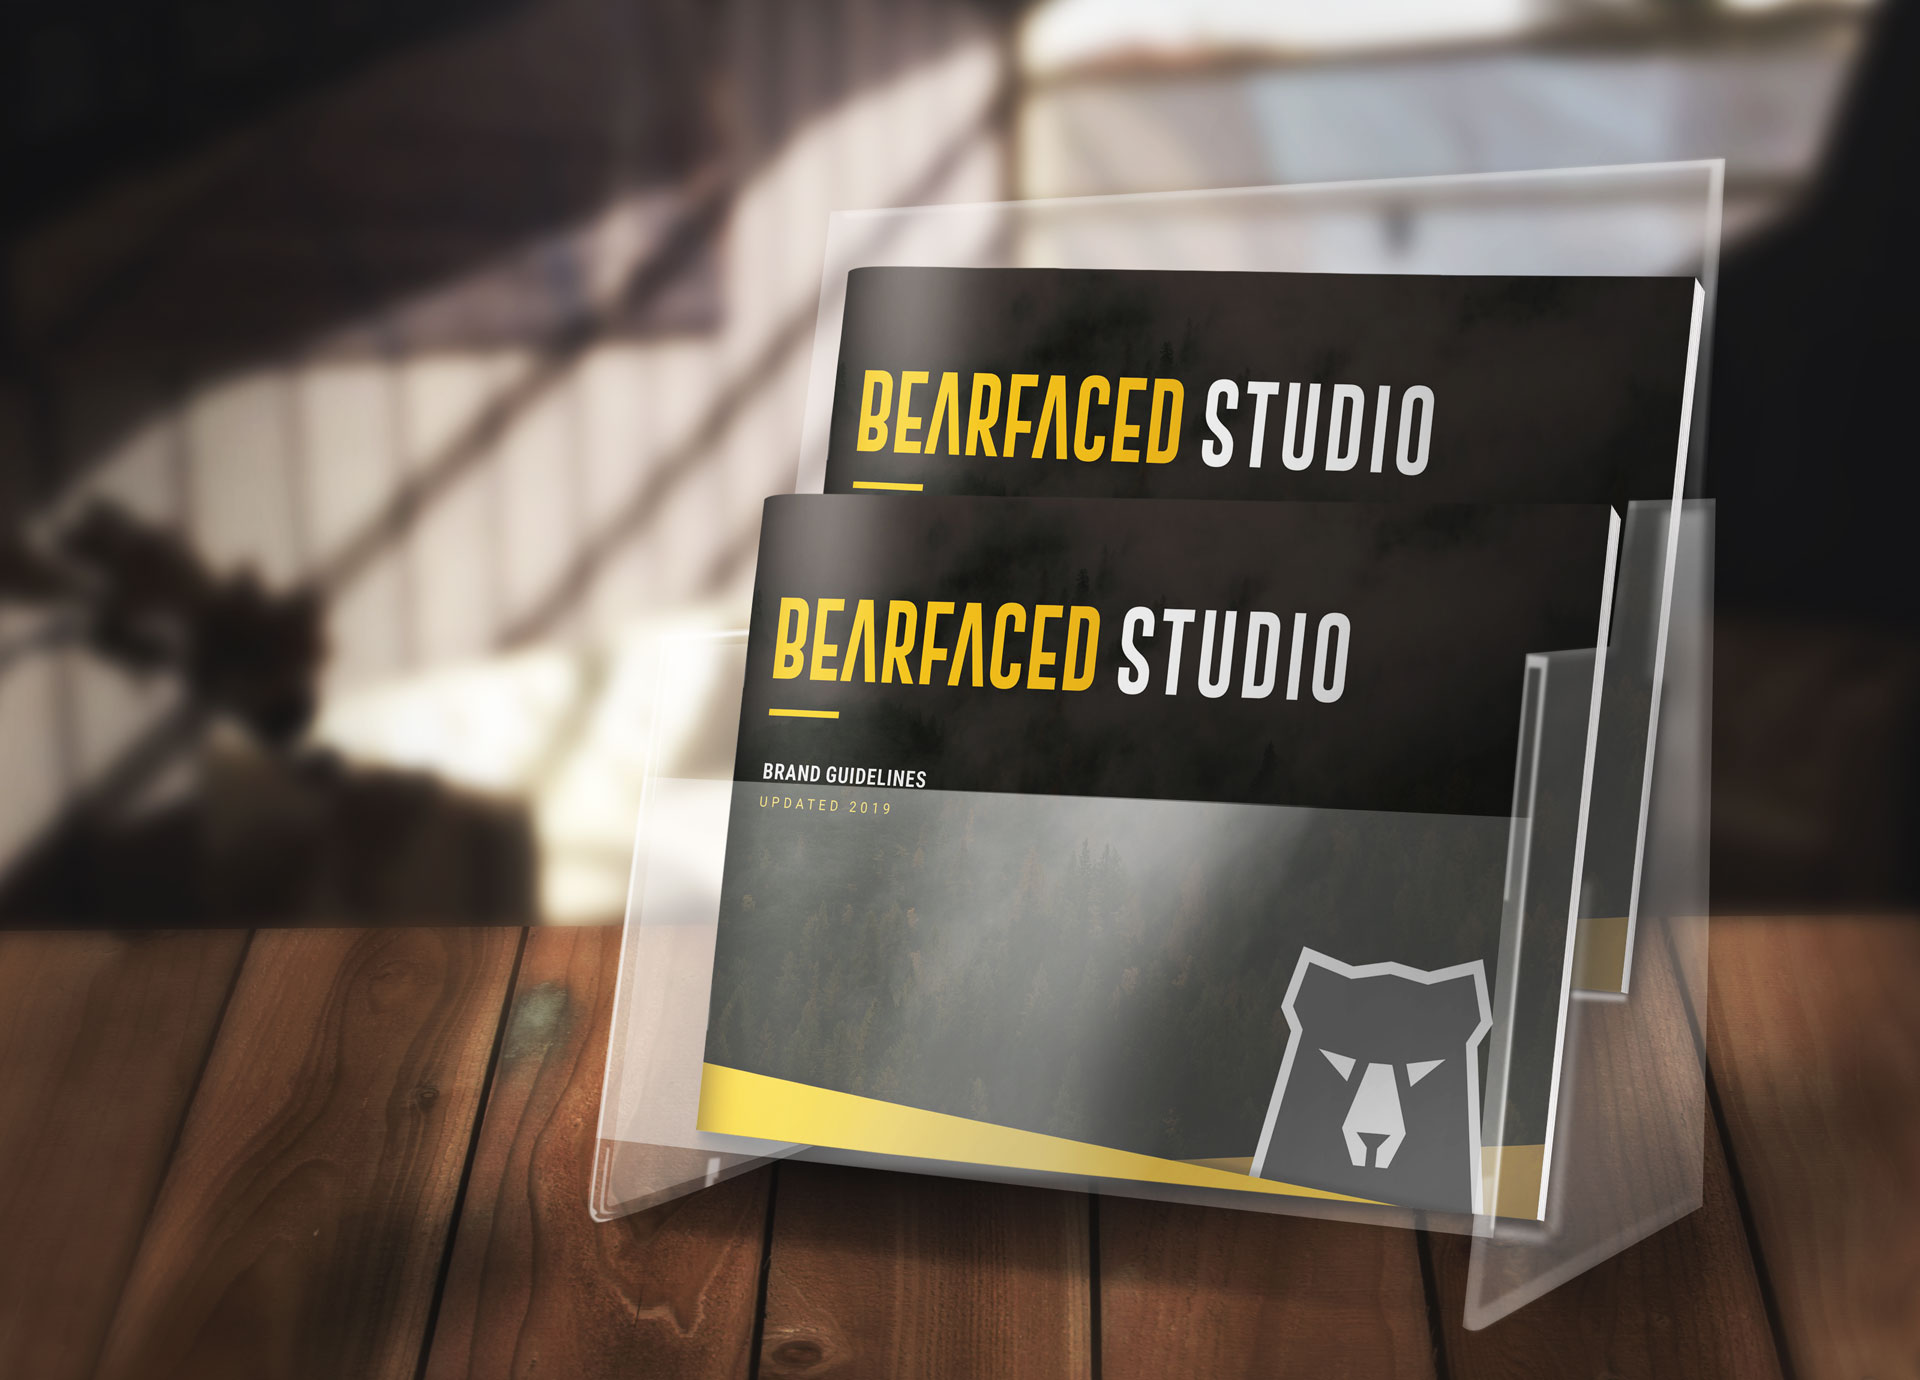 The Bearfaced Studio brand guidelines, arranged on a desk, ready to be picked up